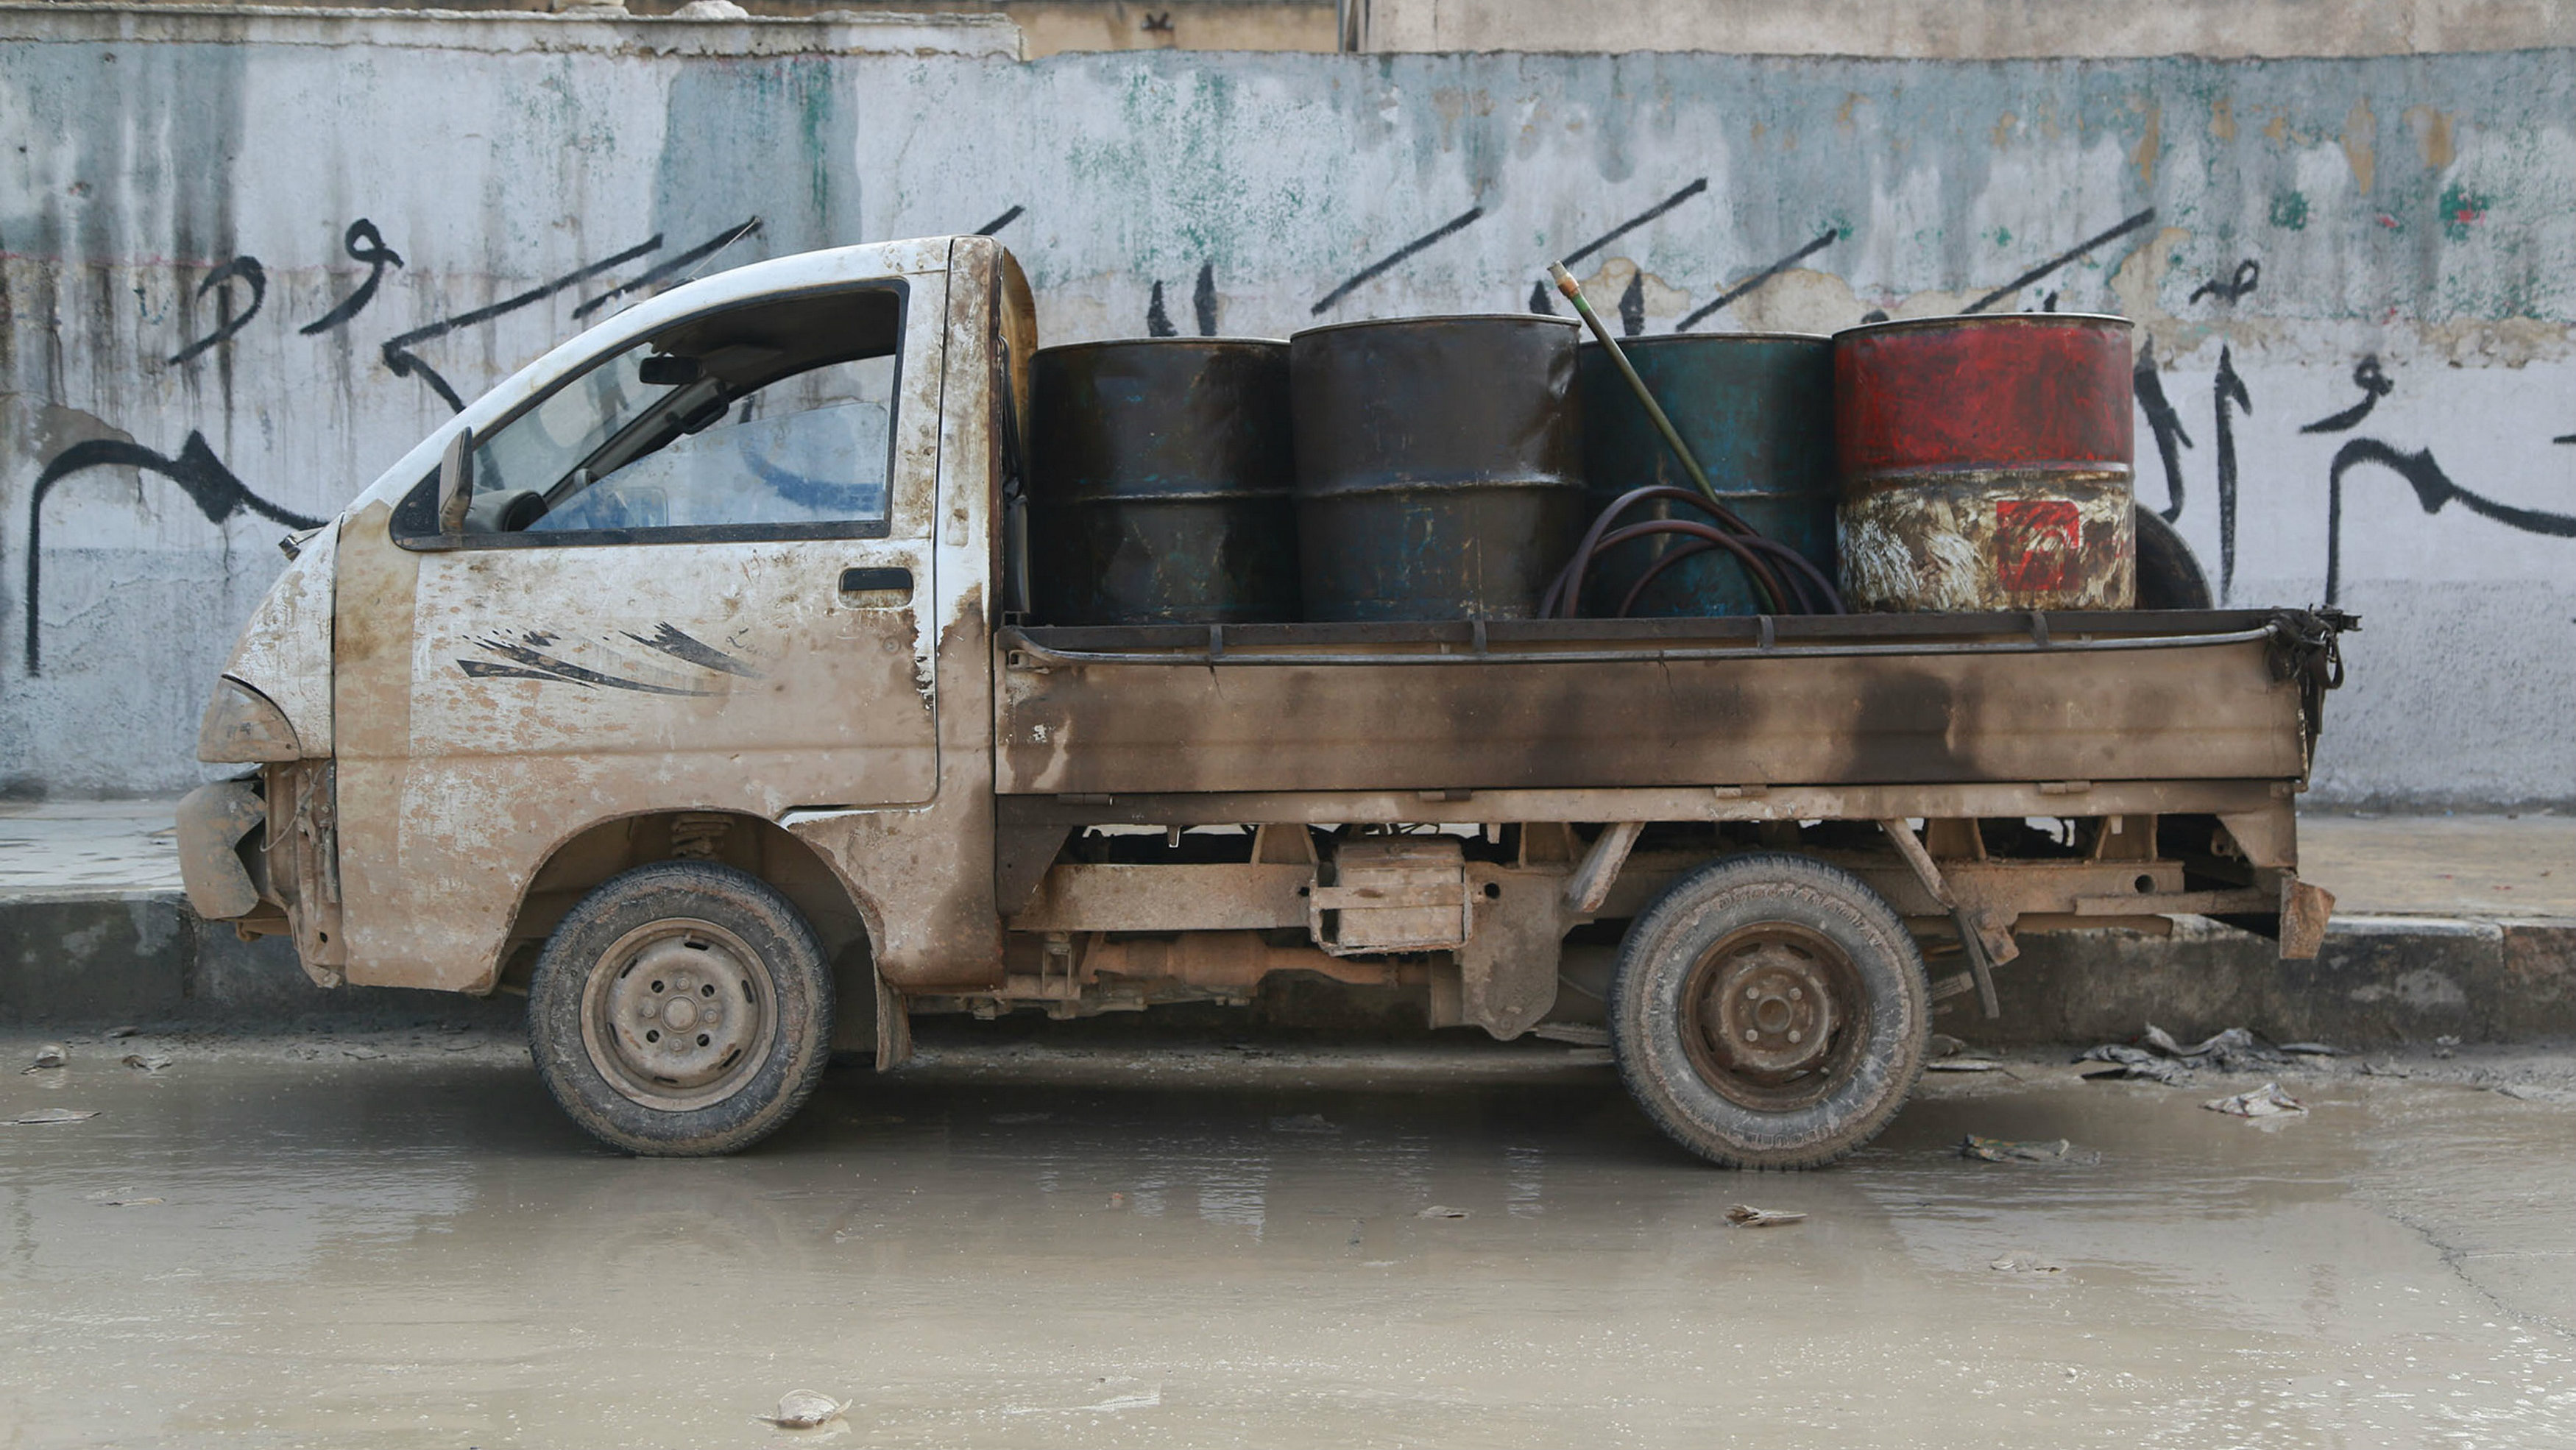 A pick-up truck carries fuel barrels for sale in the Aleppo countryside January 13, 2015.